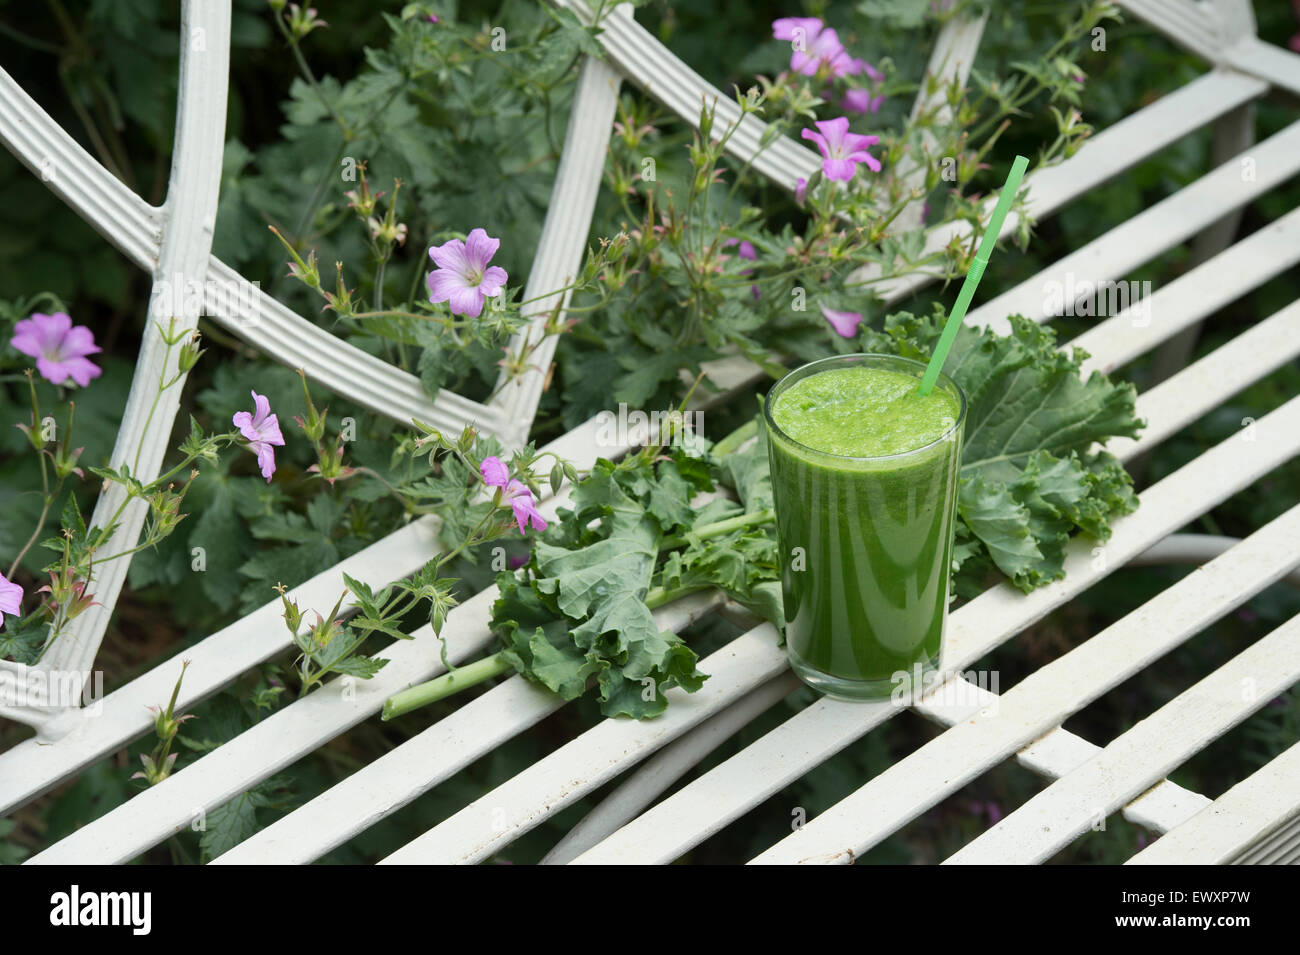 Raw green leaf and fruit smoothie in a glass - Stock Image